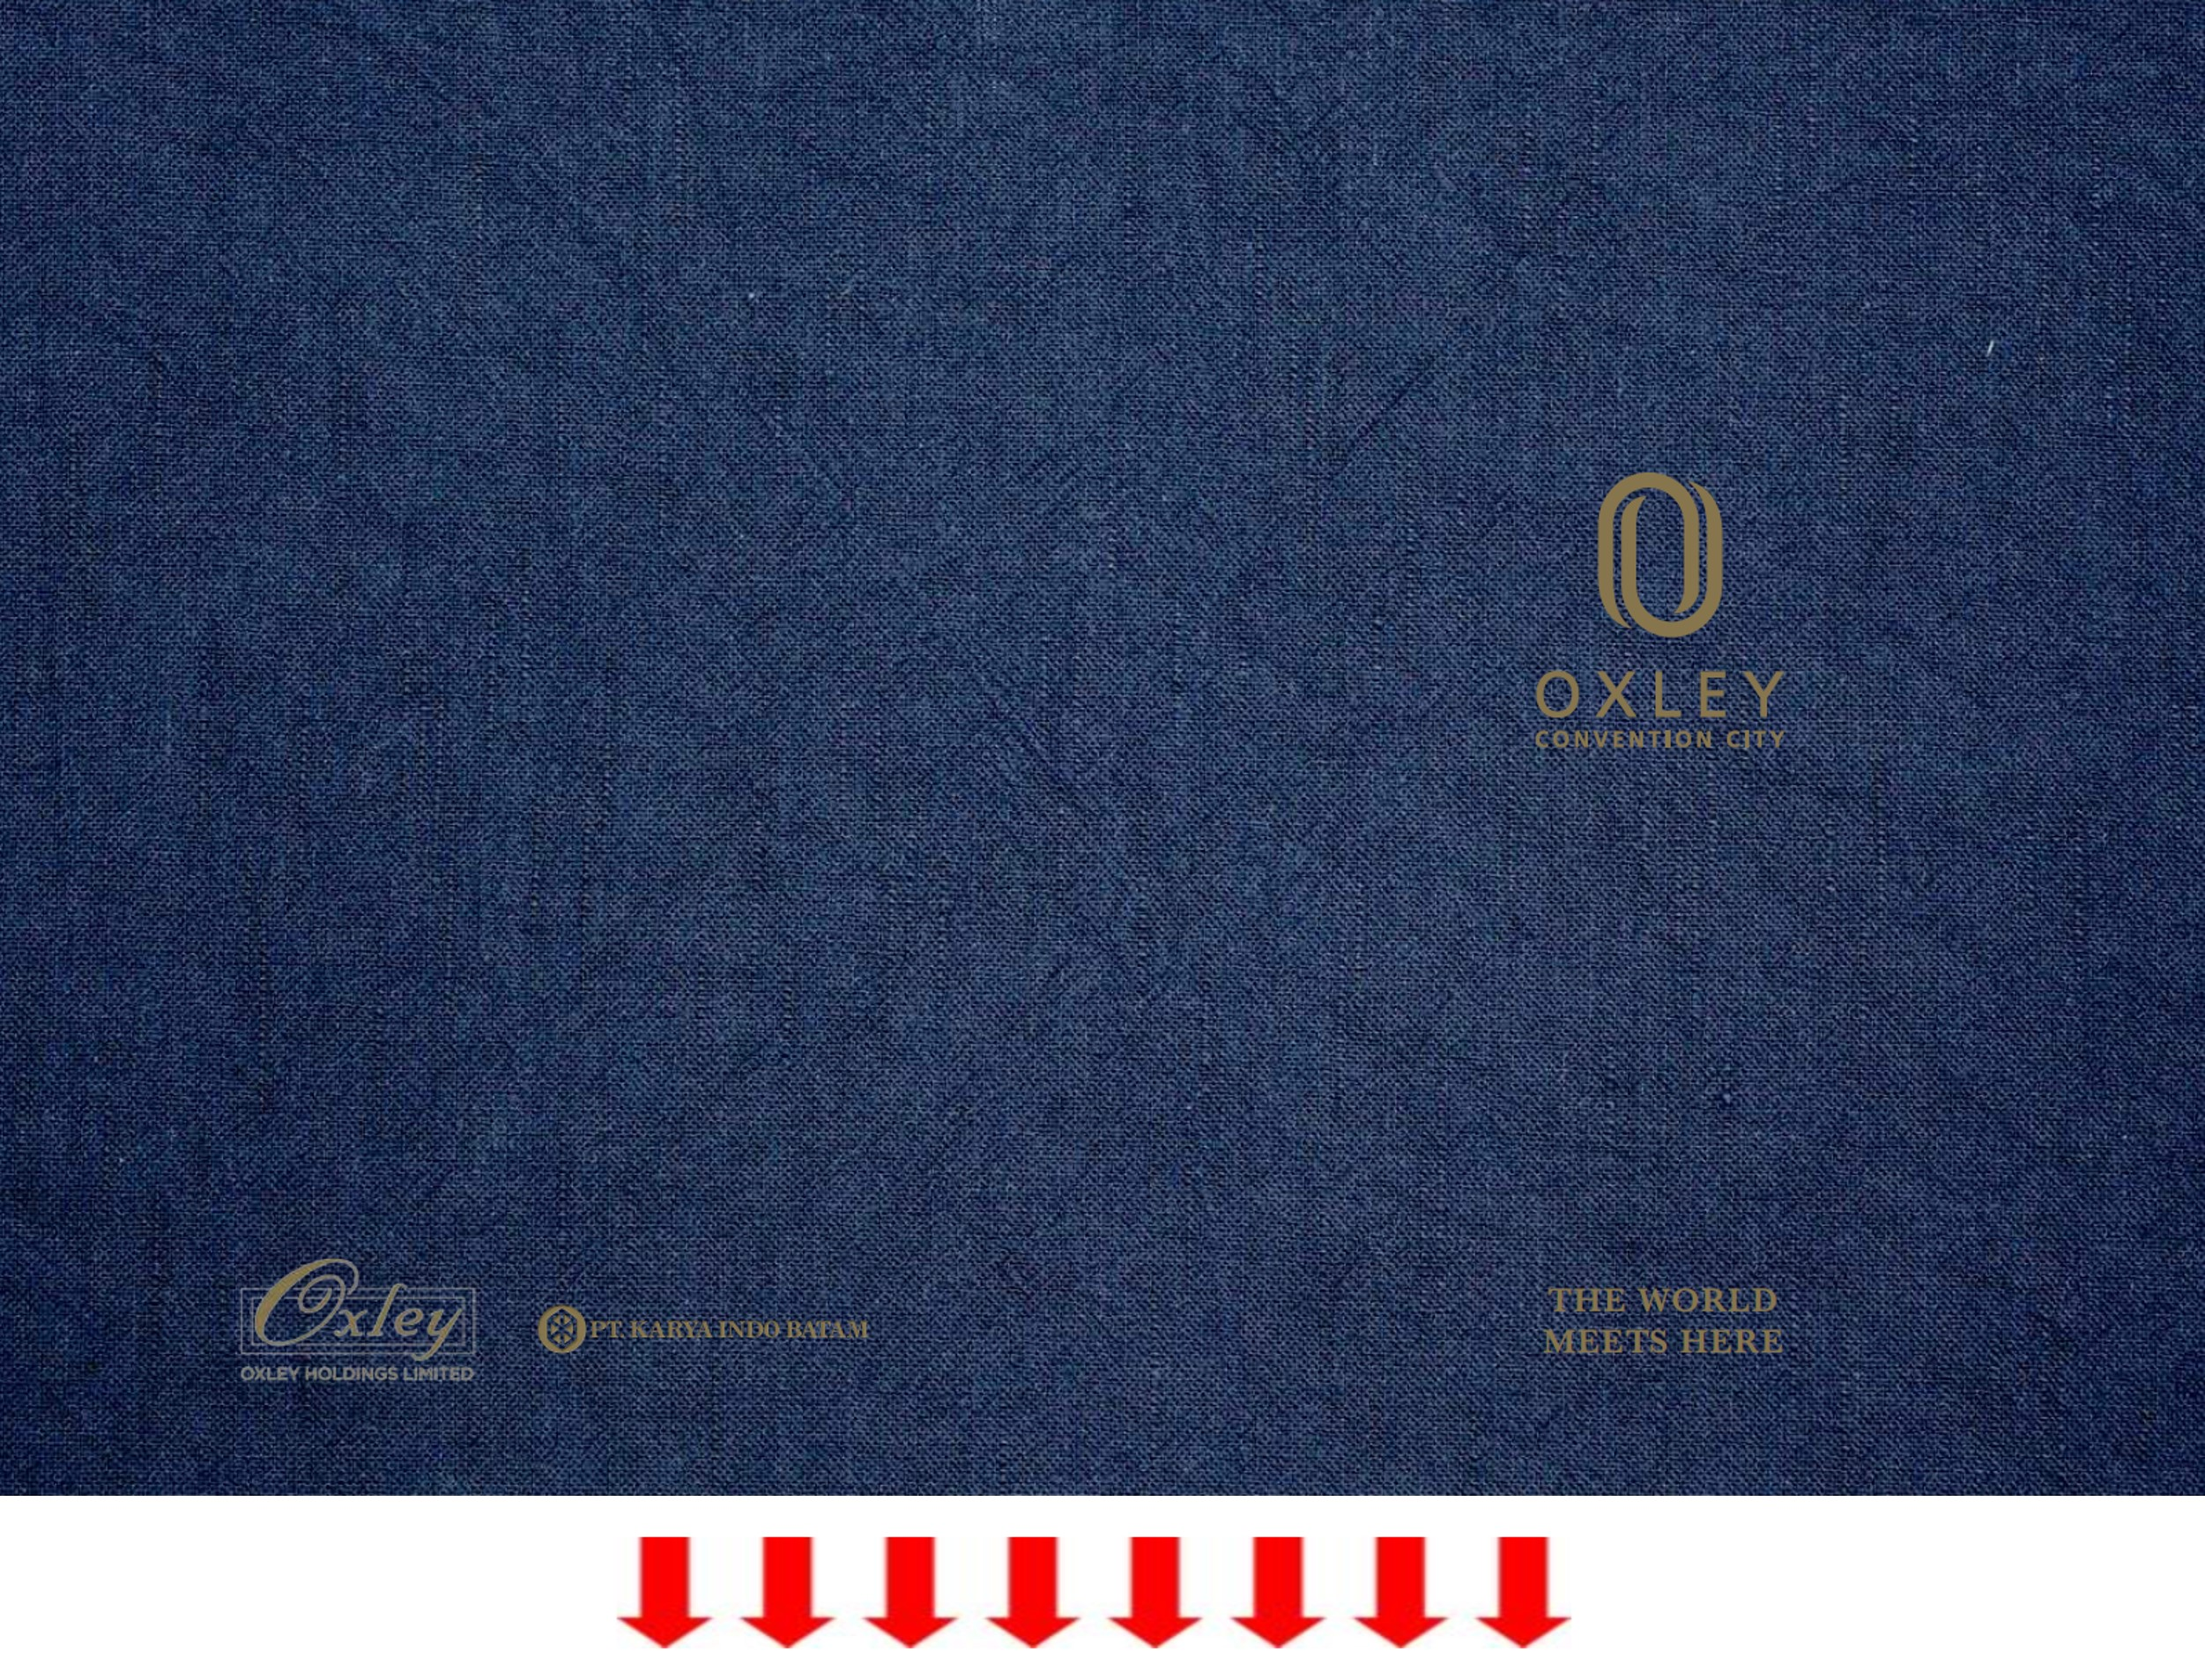 Oxley Convention City eBrochure